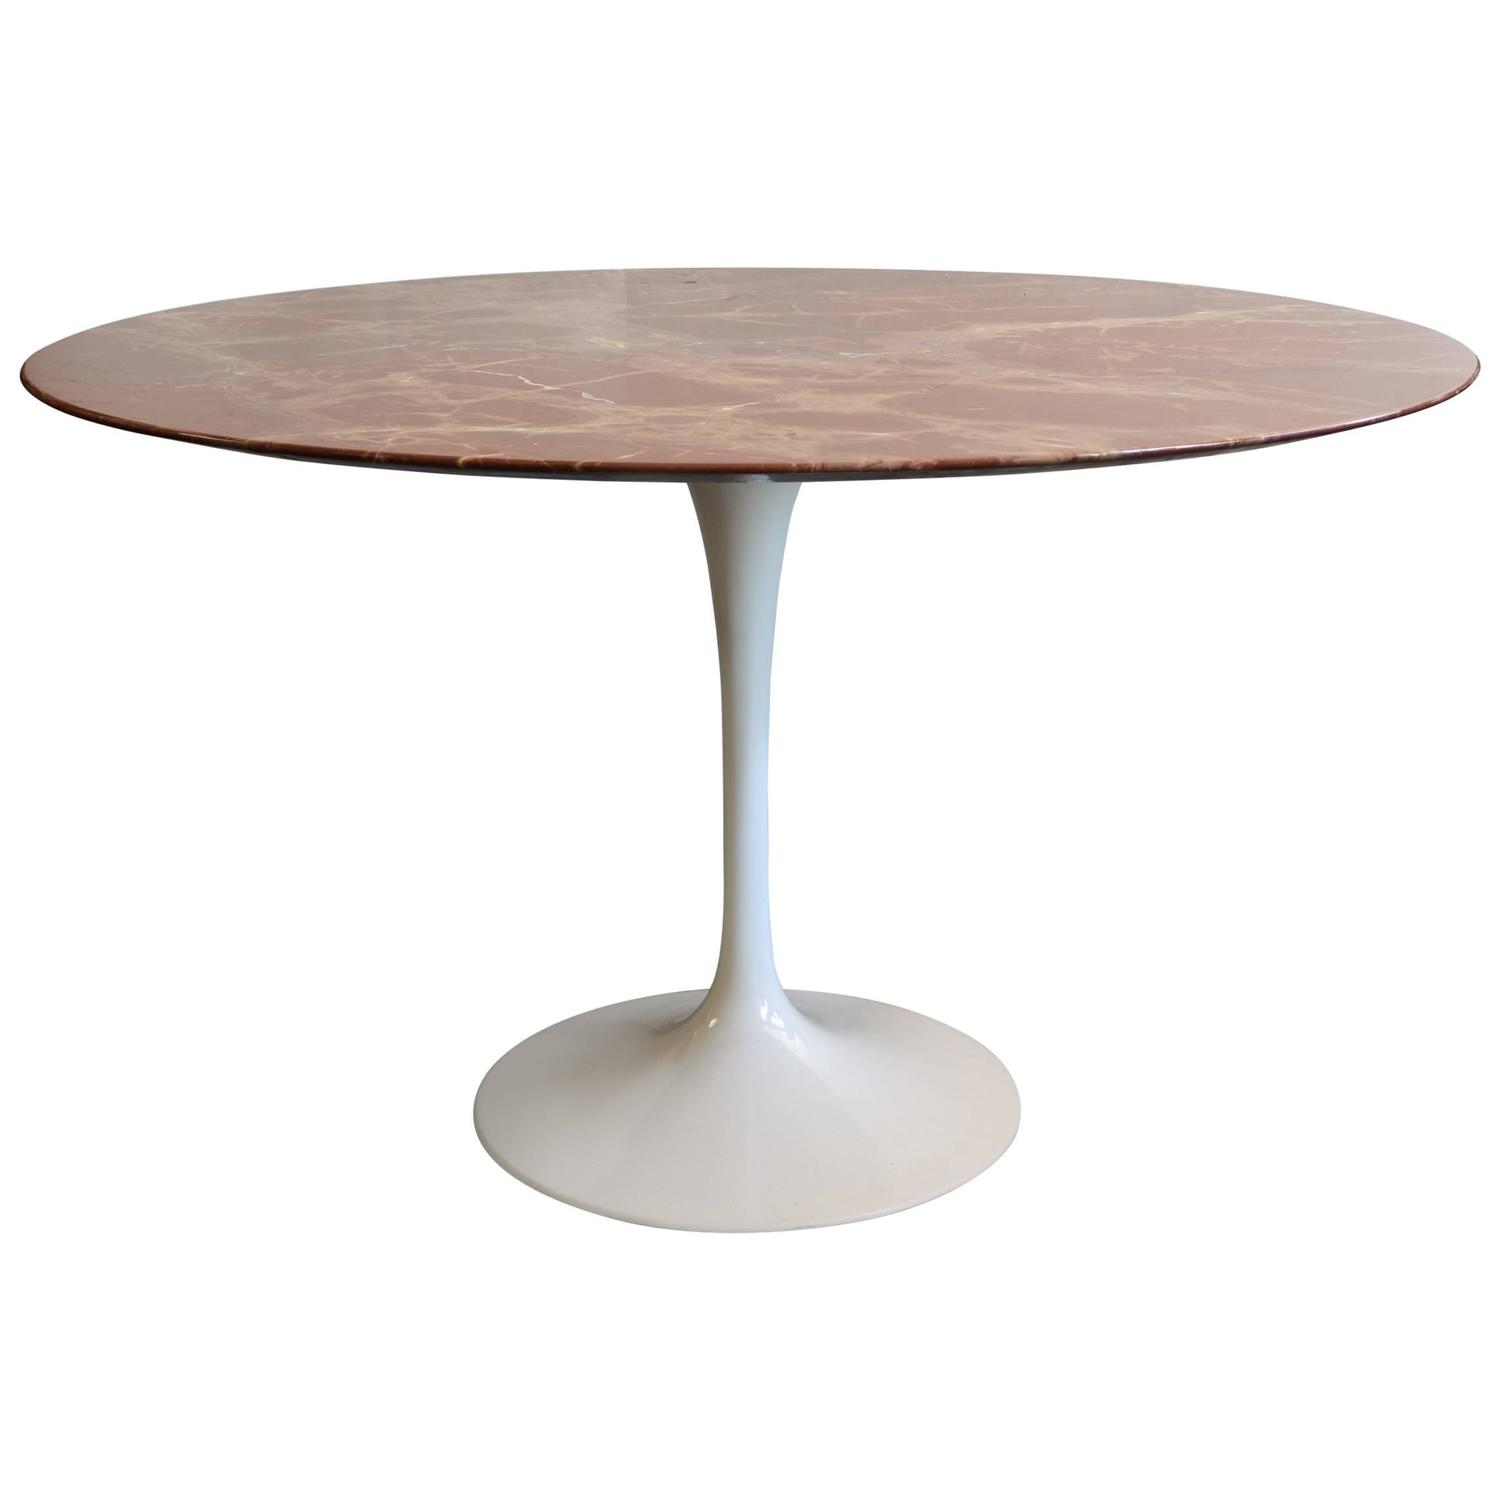 Tulip Table Saarinen Rose Marble Tulip Dining Table At 1stdibs